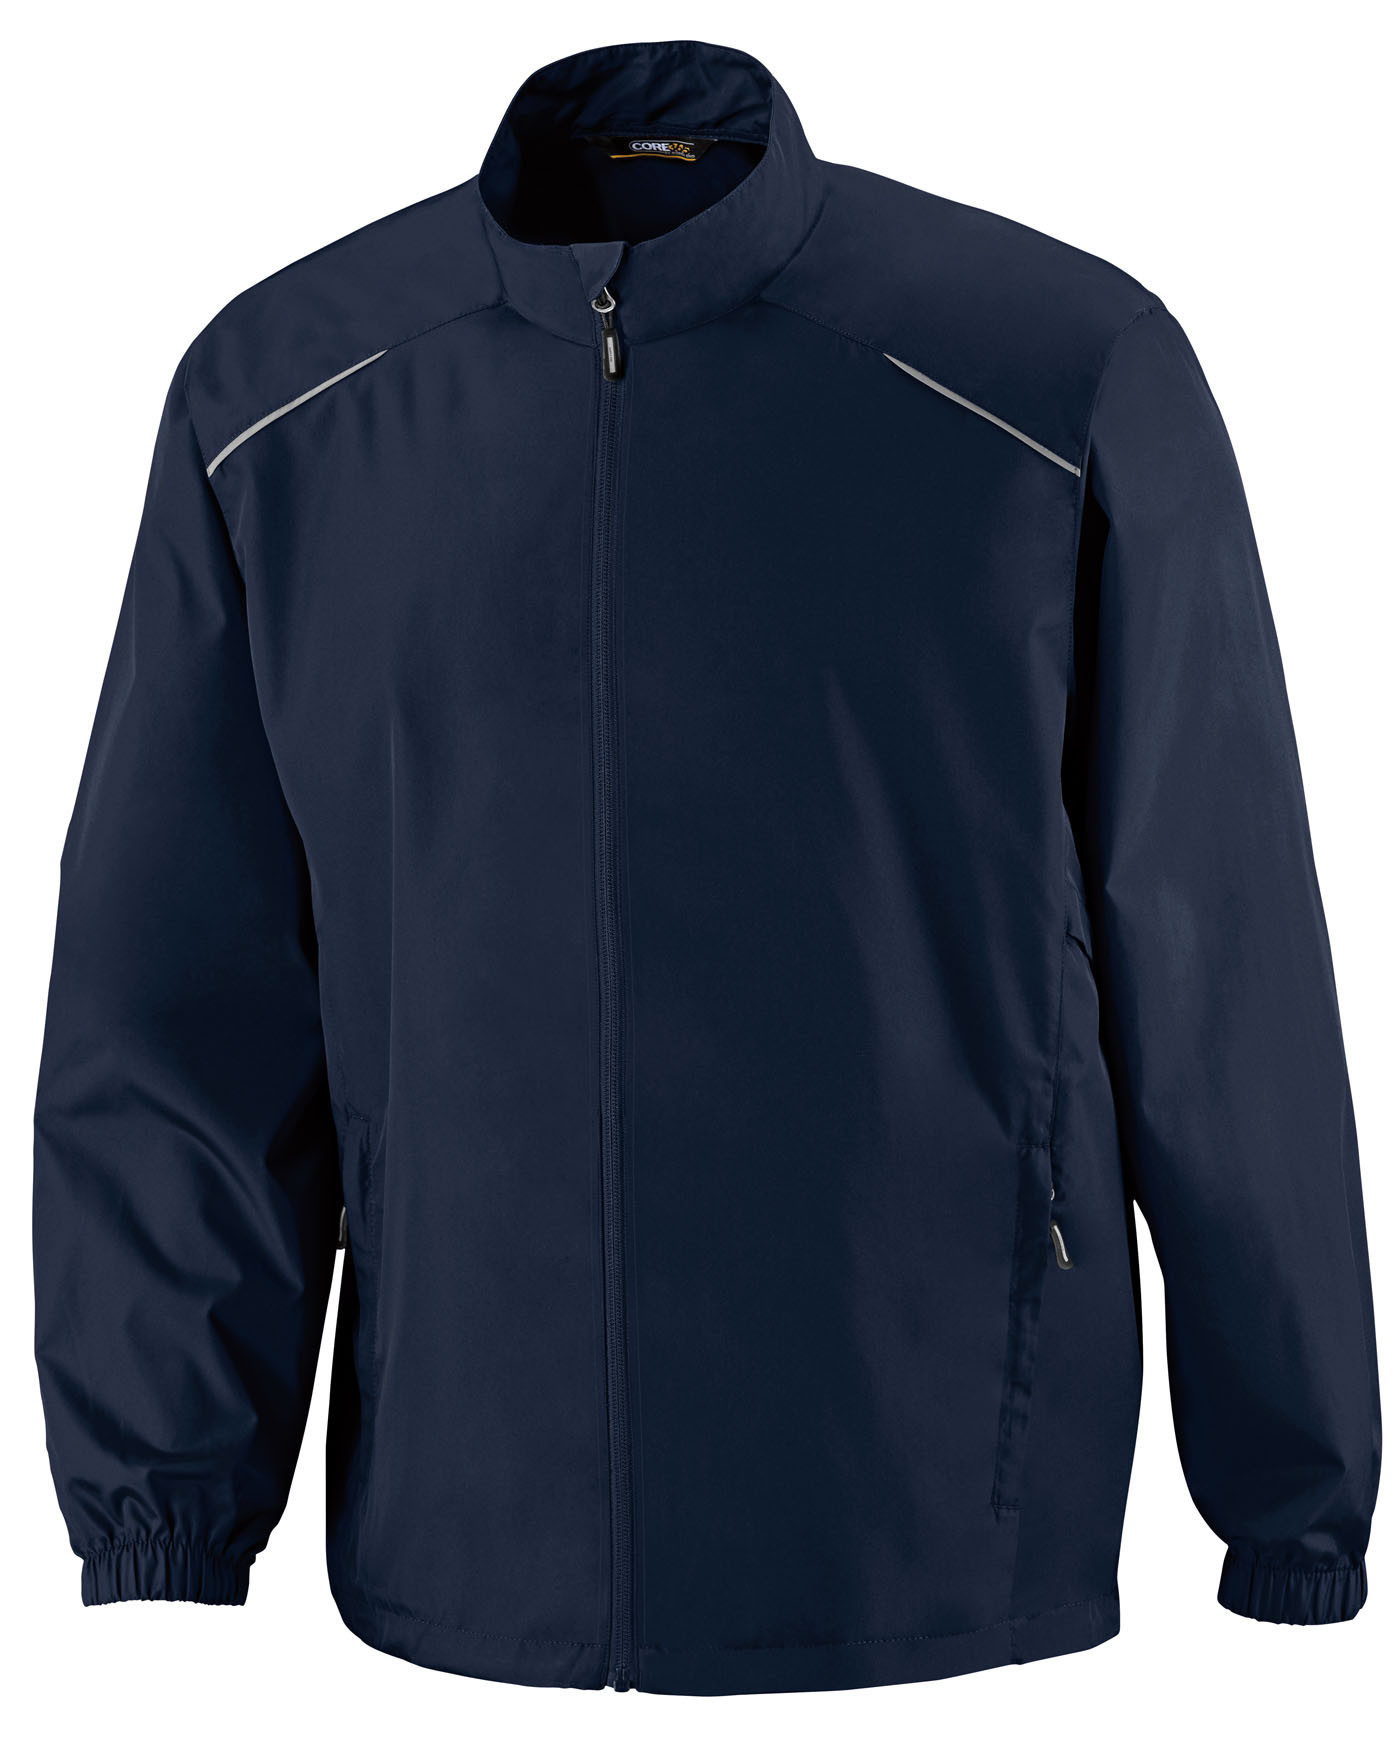 Ash City Core365 88183 - Motivate Core365 Unlined Lightweight Jacket